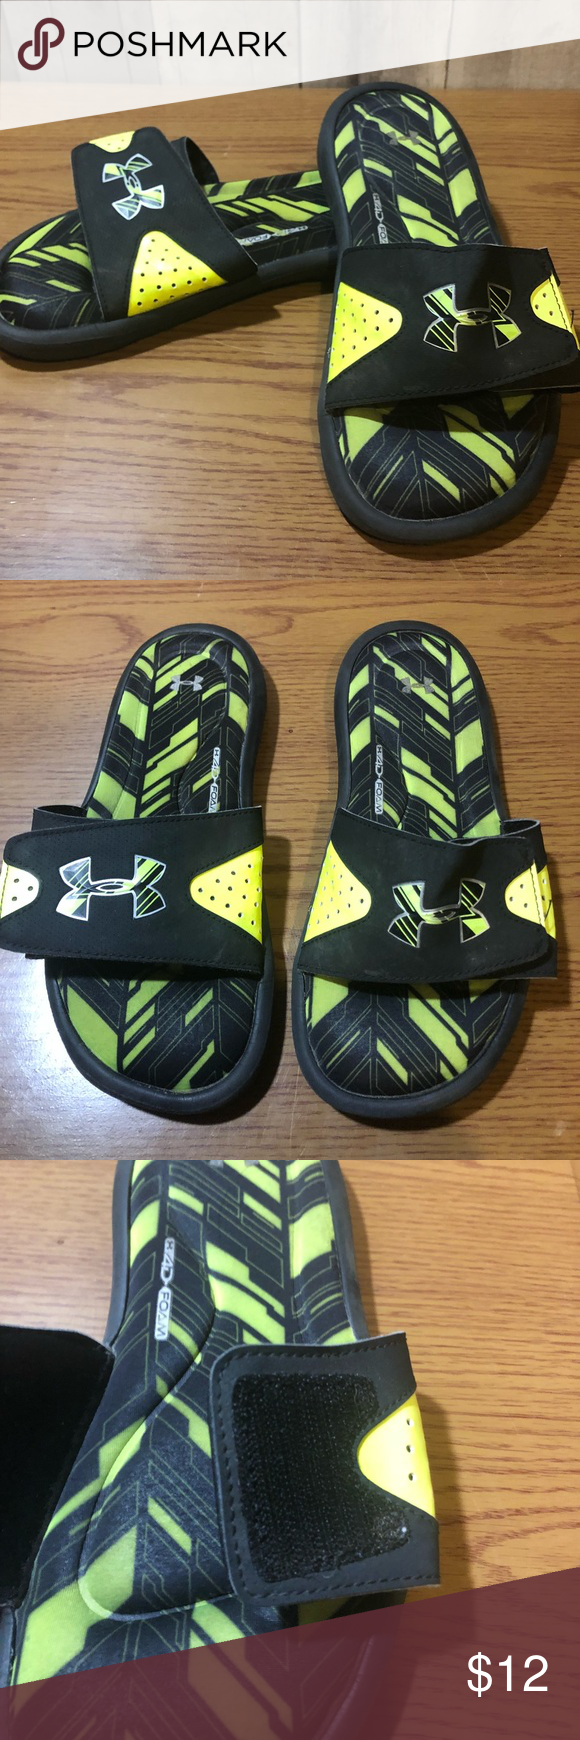 21596e9803e0 Like new Under Armour slides Only worn a handful of times. Made with cushy  4d memory foam. Under Armour Shoes Sandals   Flip Flops